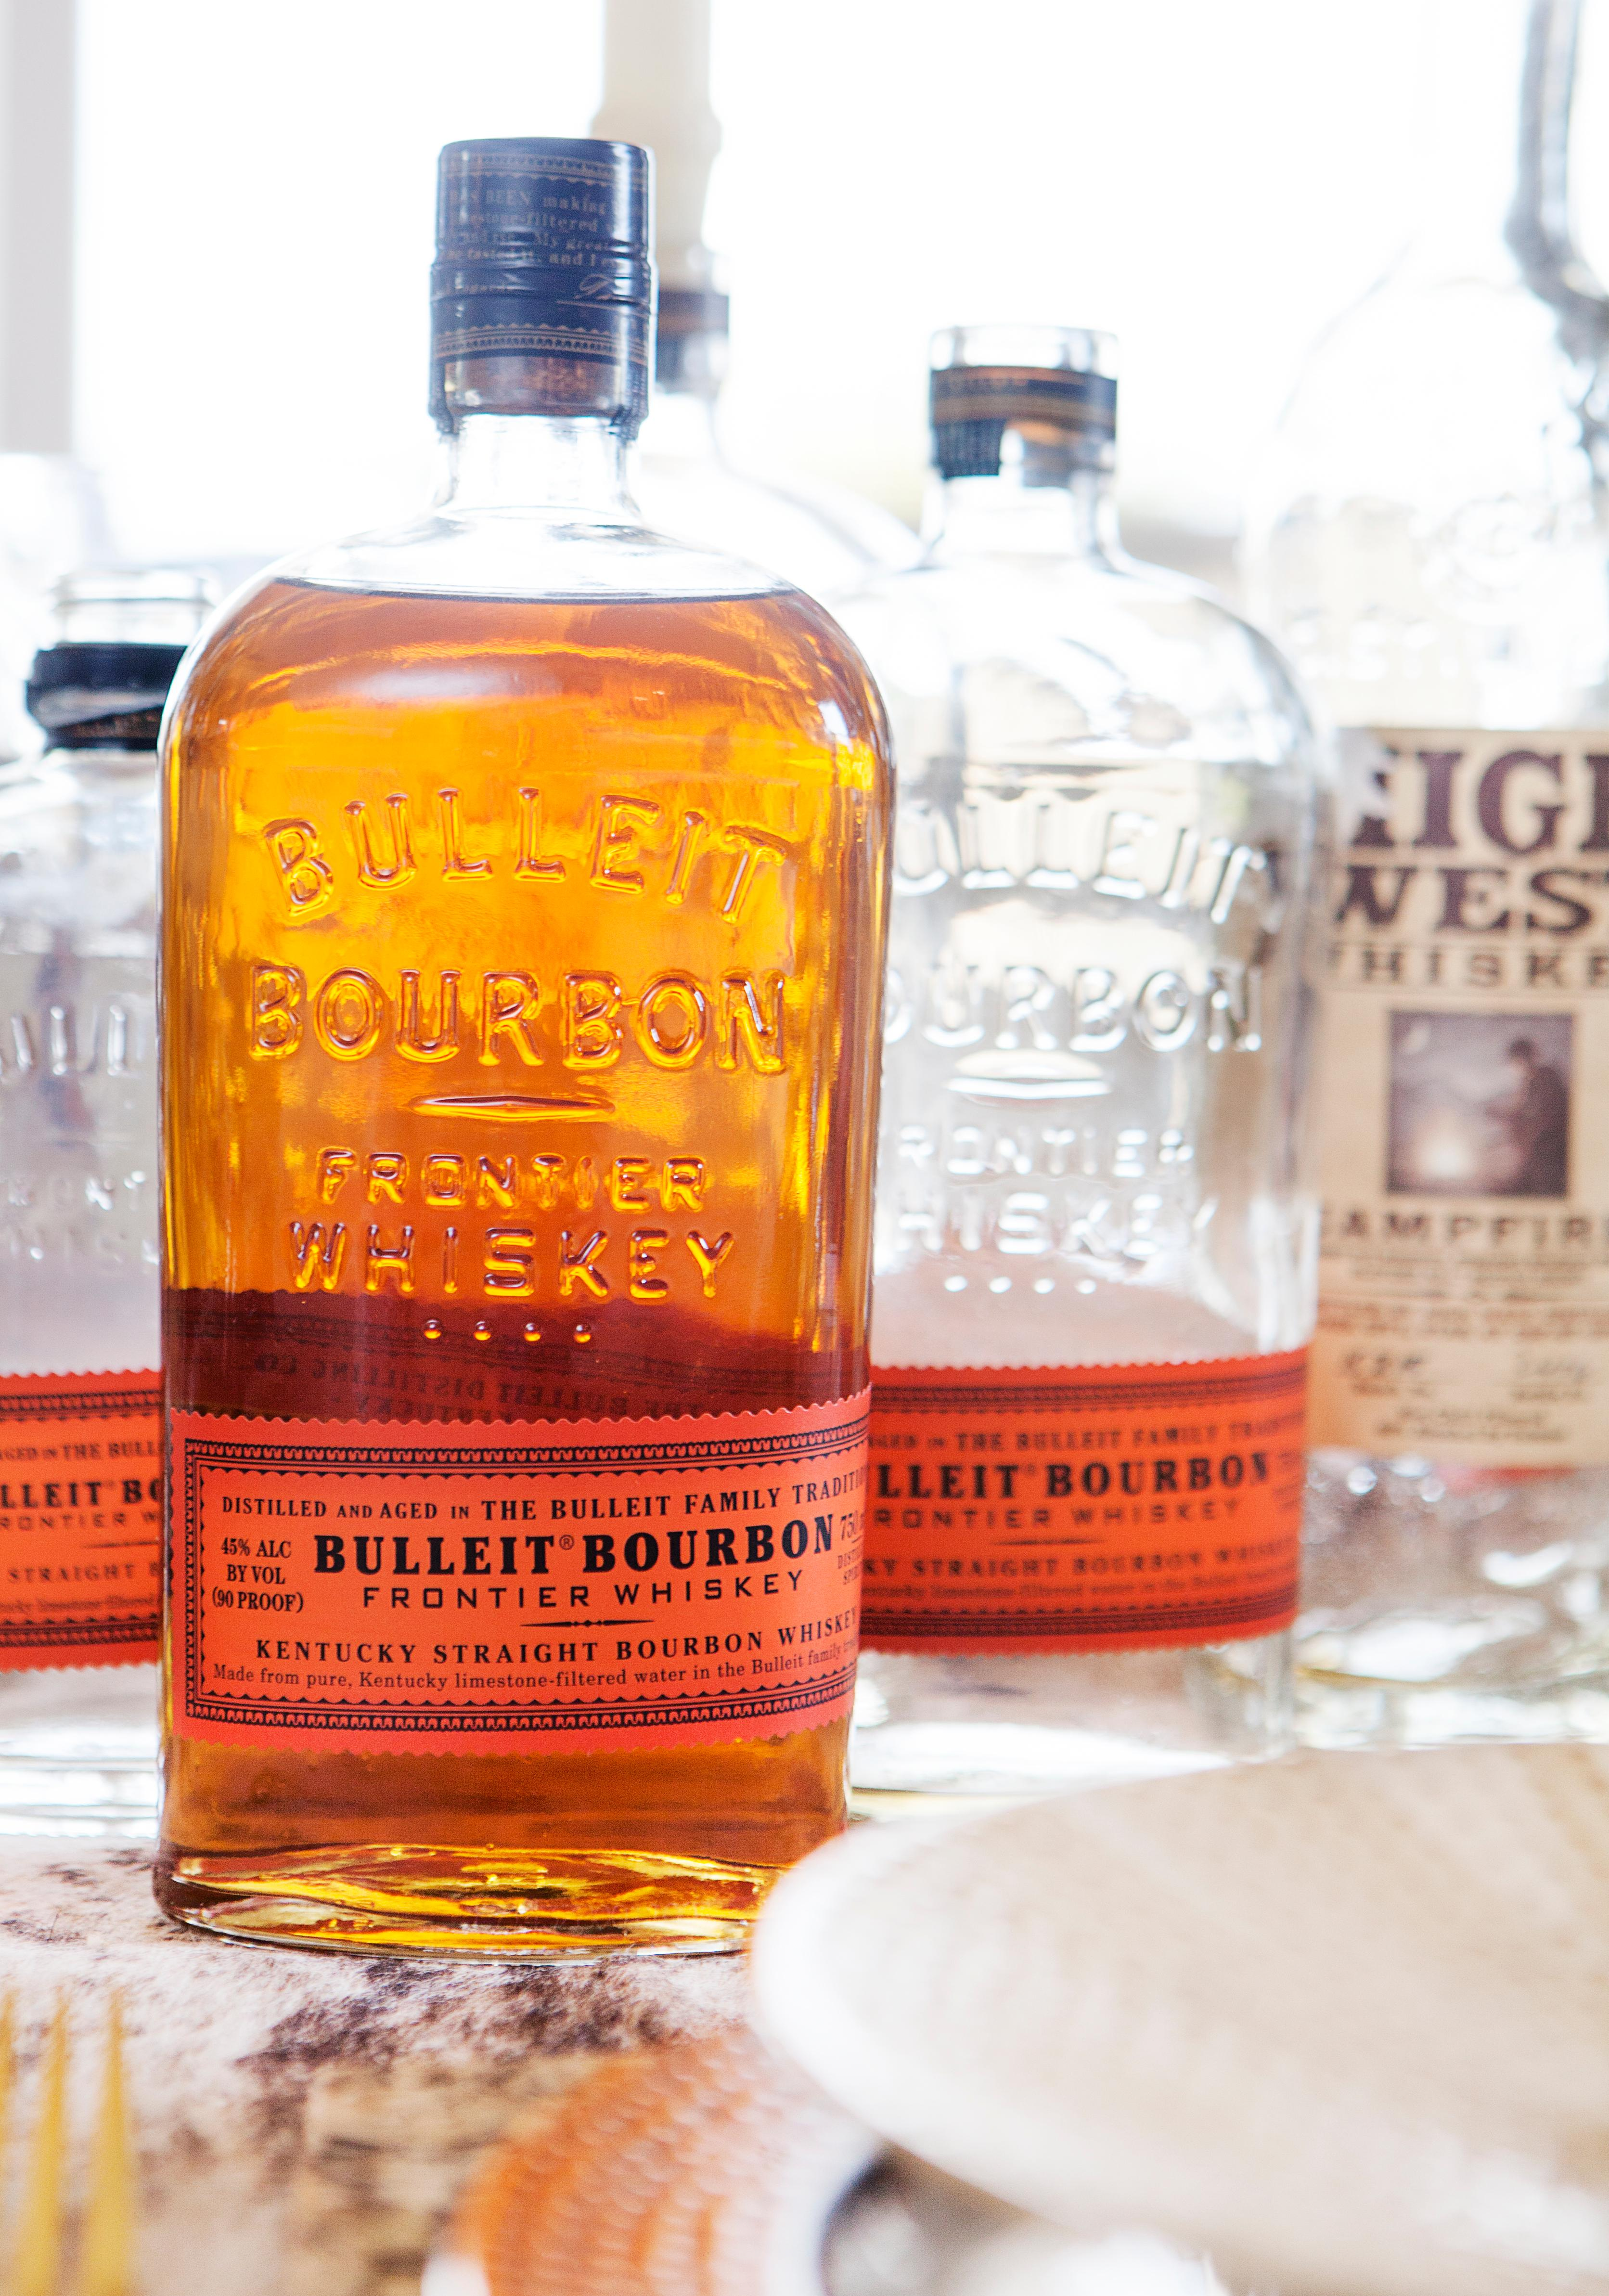 You can't just have empty bourbon bottles down the center of the table! Add a full bottle of bourbon for your guests to enjoy during dinner. (Image: Ashley Hafstead)